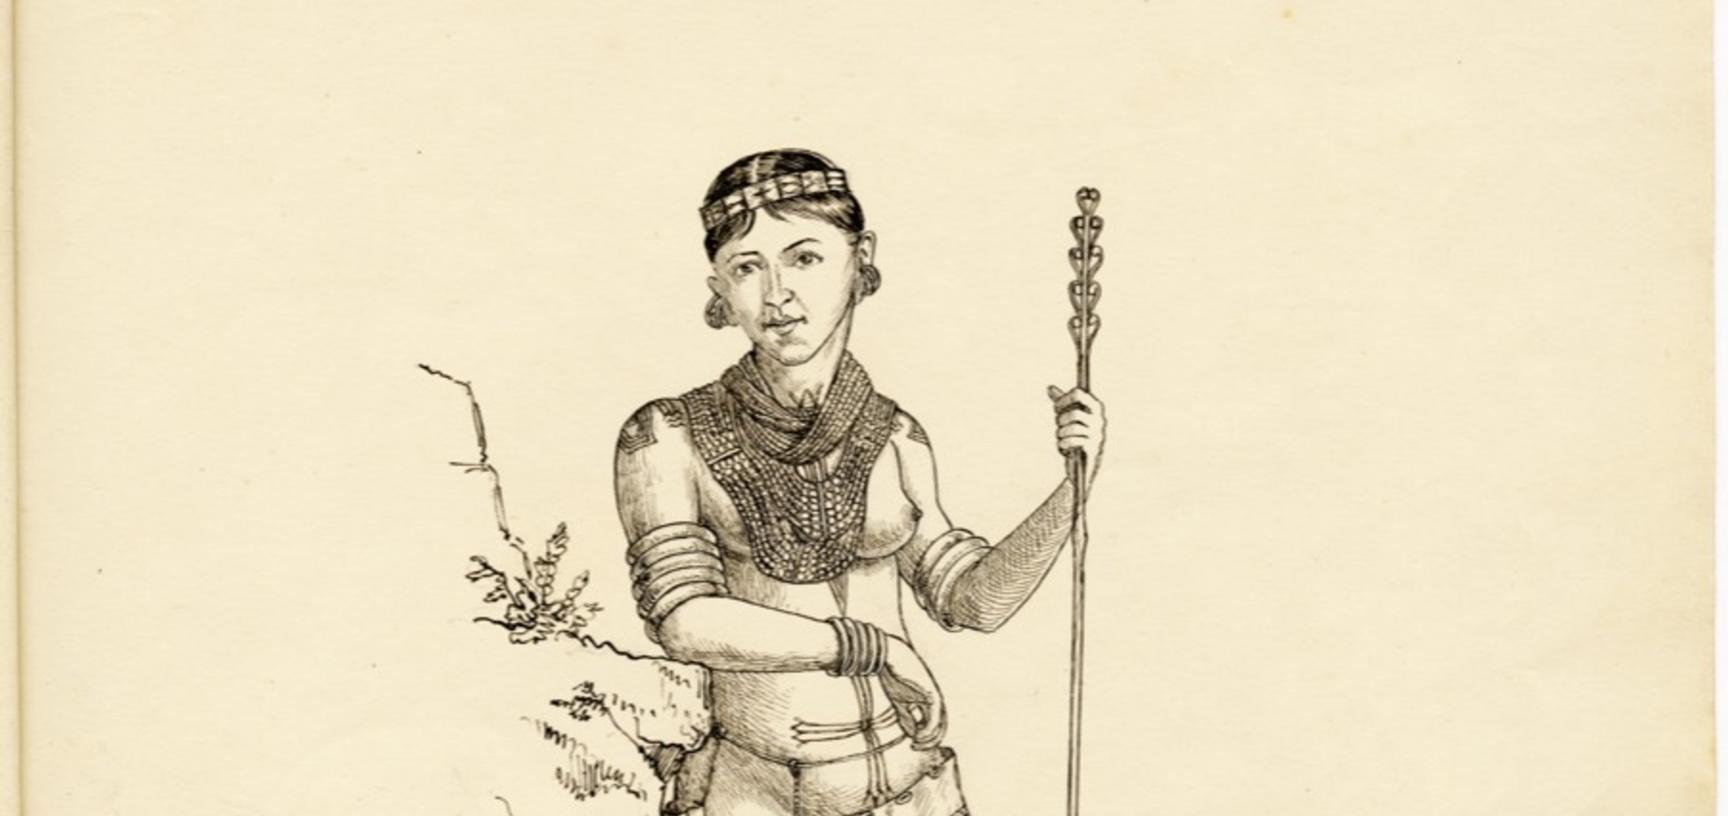 'Phemi – wife of Soibang' (handwritten caption). Ink drawing by Robert Gosset Woodthorpe. 1875.